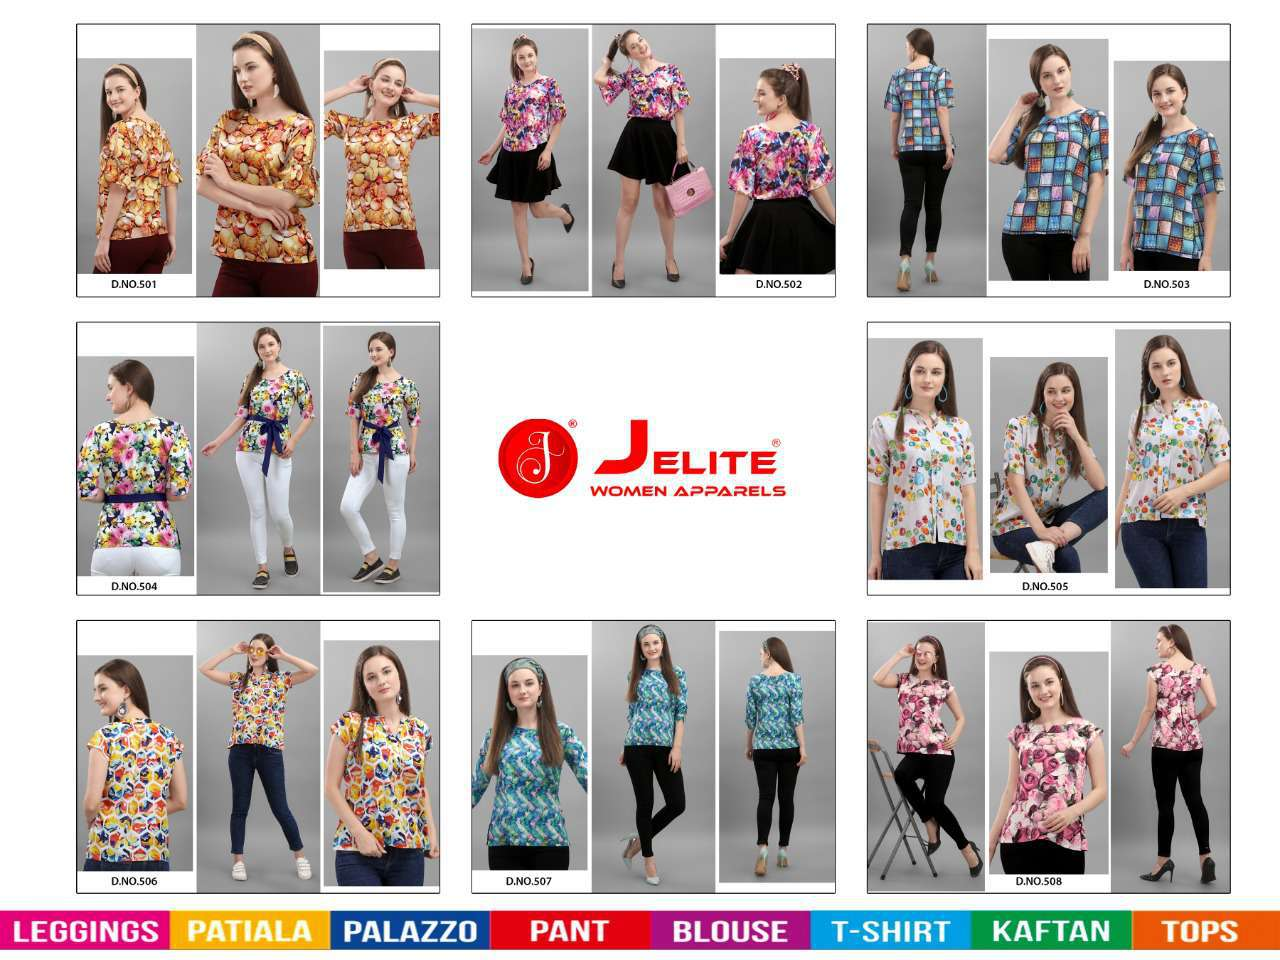 Jelite Orchid Tops Wholesale Catalog 8 Pcs 9 - Jelite Orchid Tops Wholesale Catalog 8 Pcs